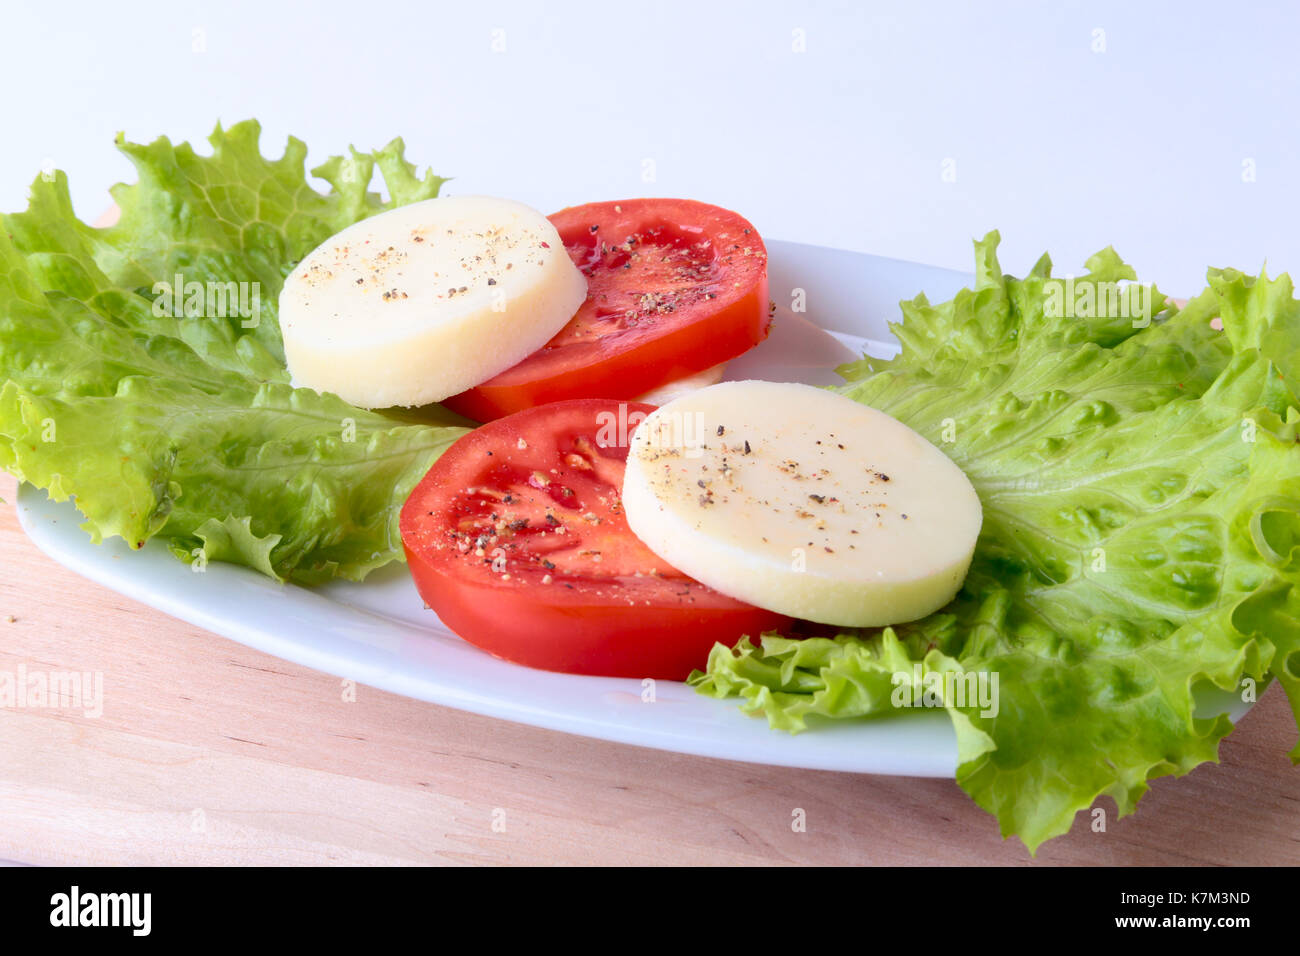 Portion of Mozzarella with Tomatoes, lettuce leaf and Balsamic dressing on white plate. selective focus close-up shot. - Stock Image